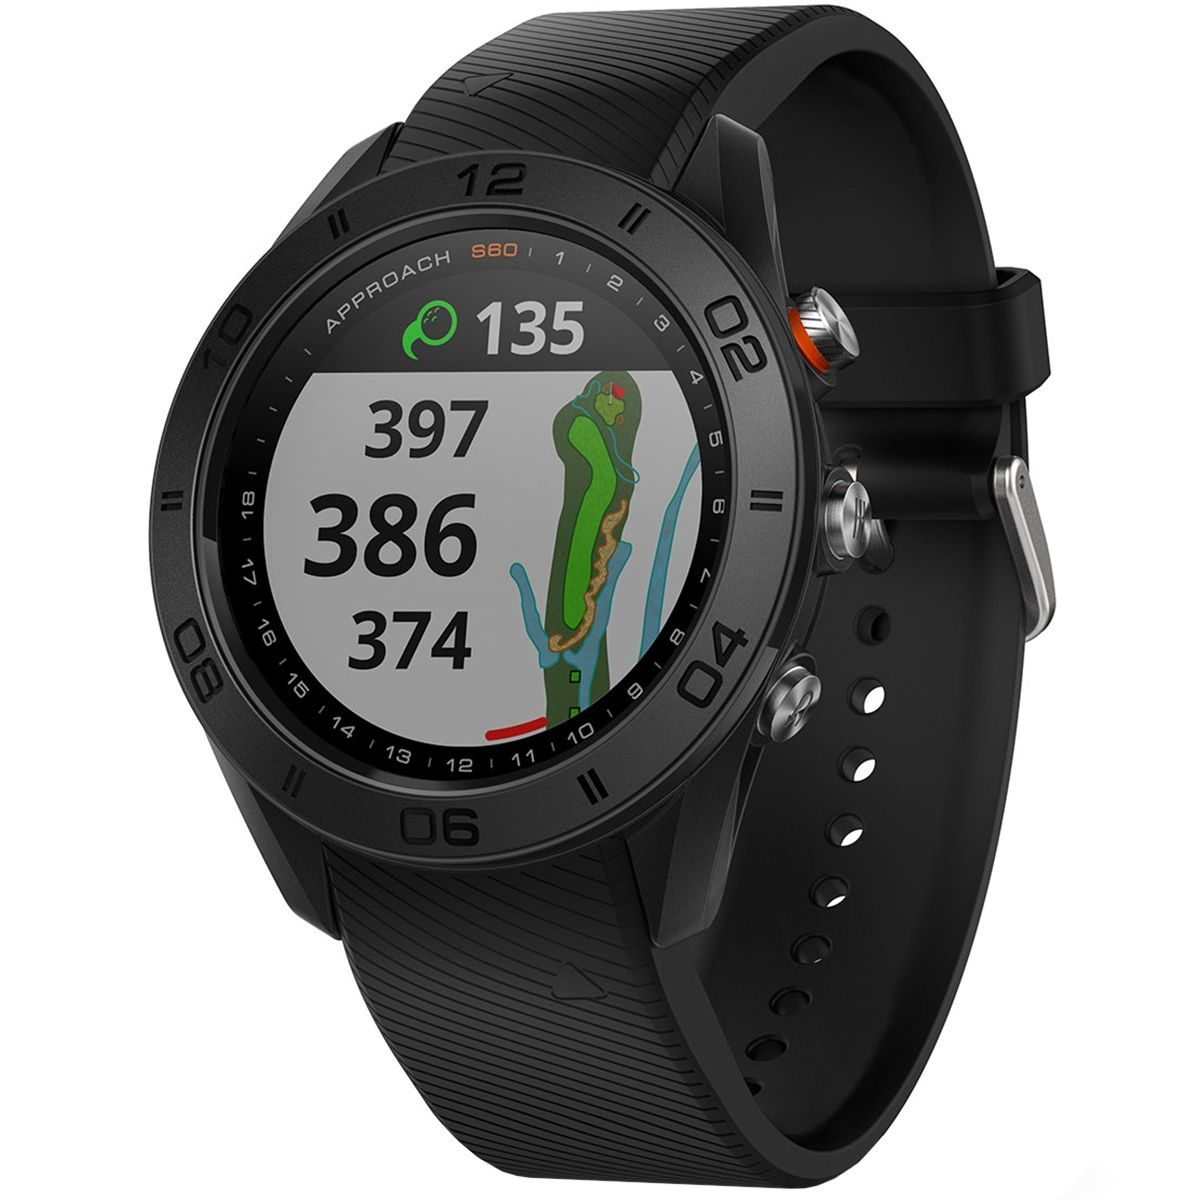 Garmin Approach S60 GPS Watch Golf gps watch, Watches